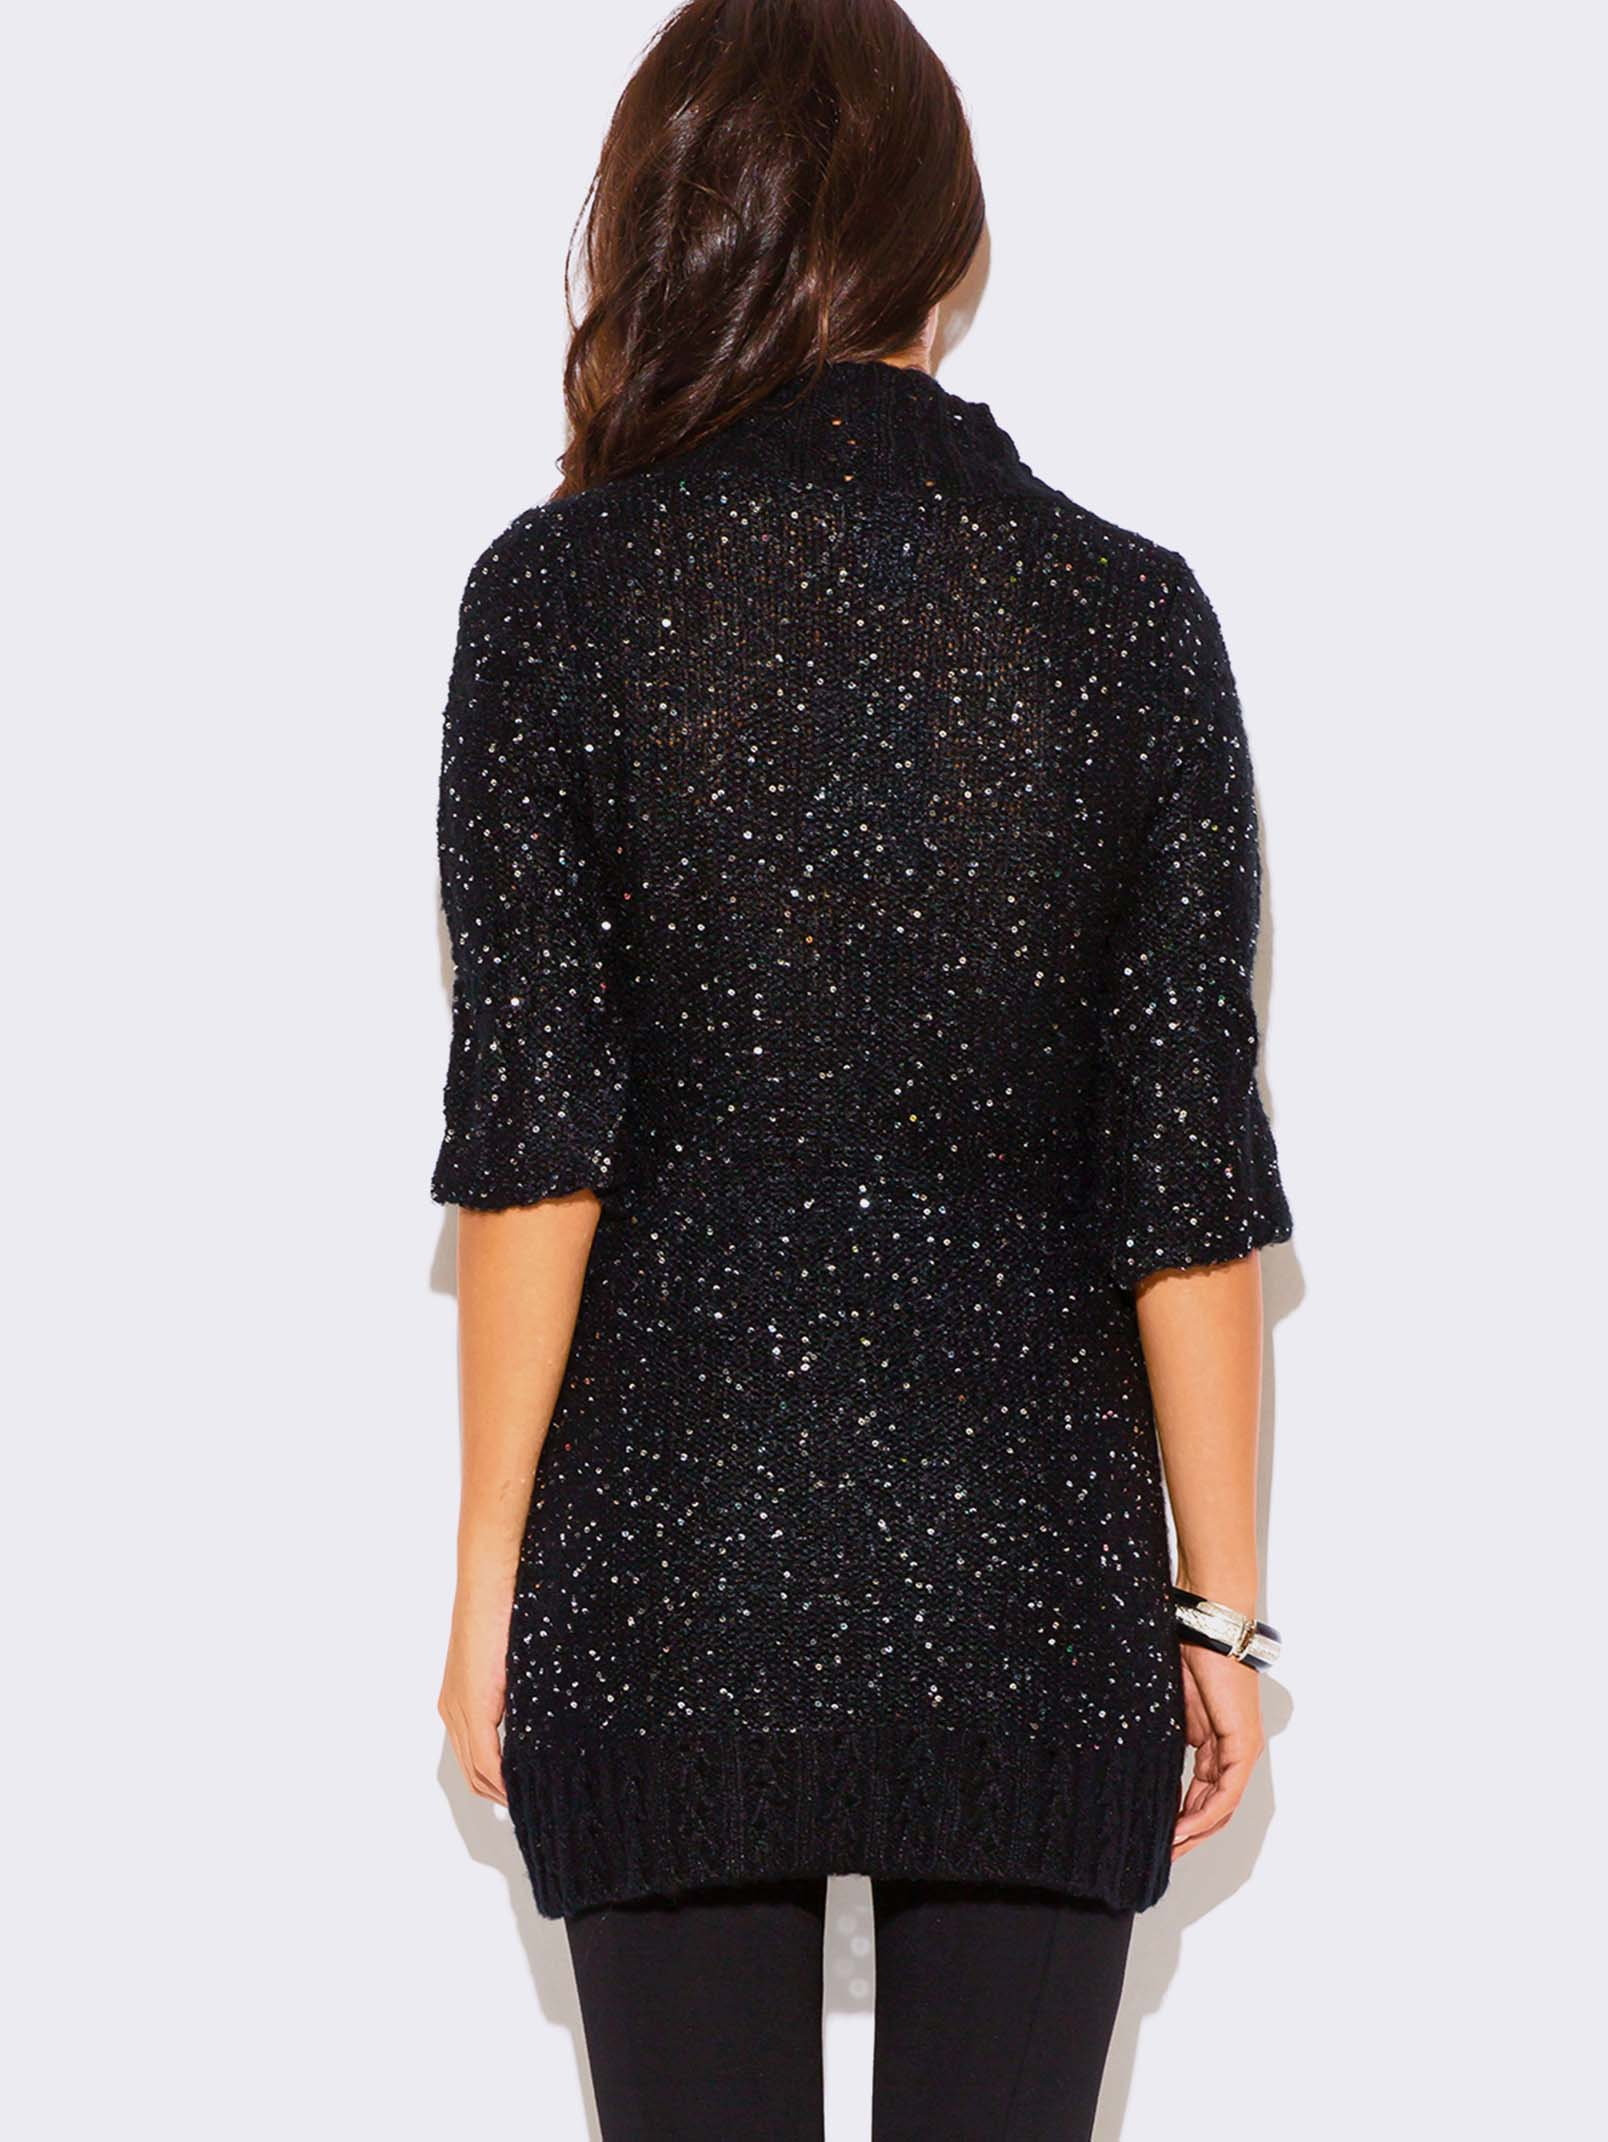 BLACK SEQUINED SWEATER DRESS